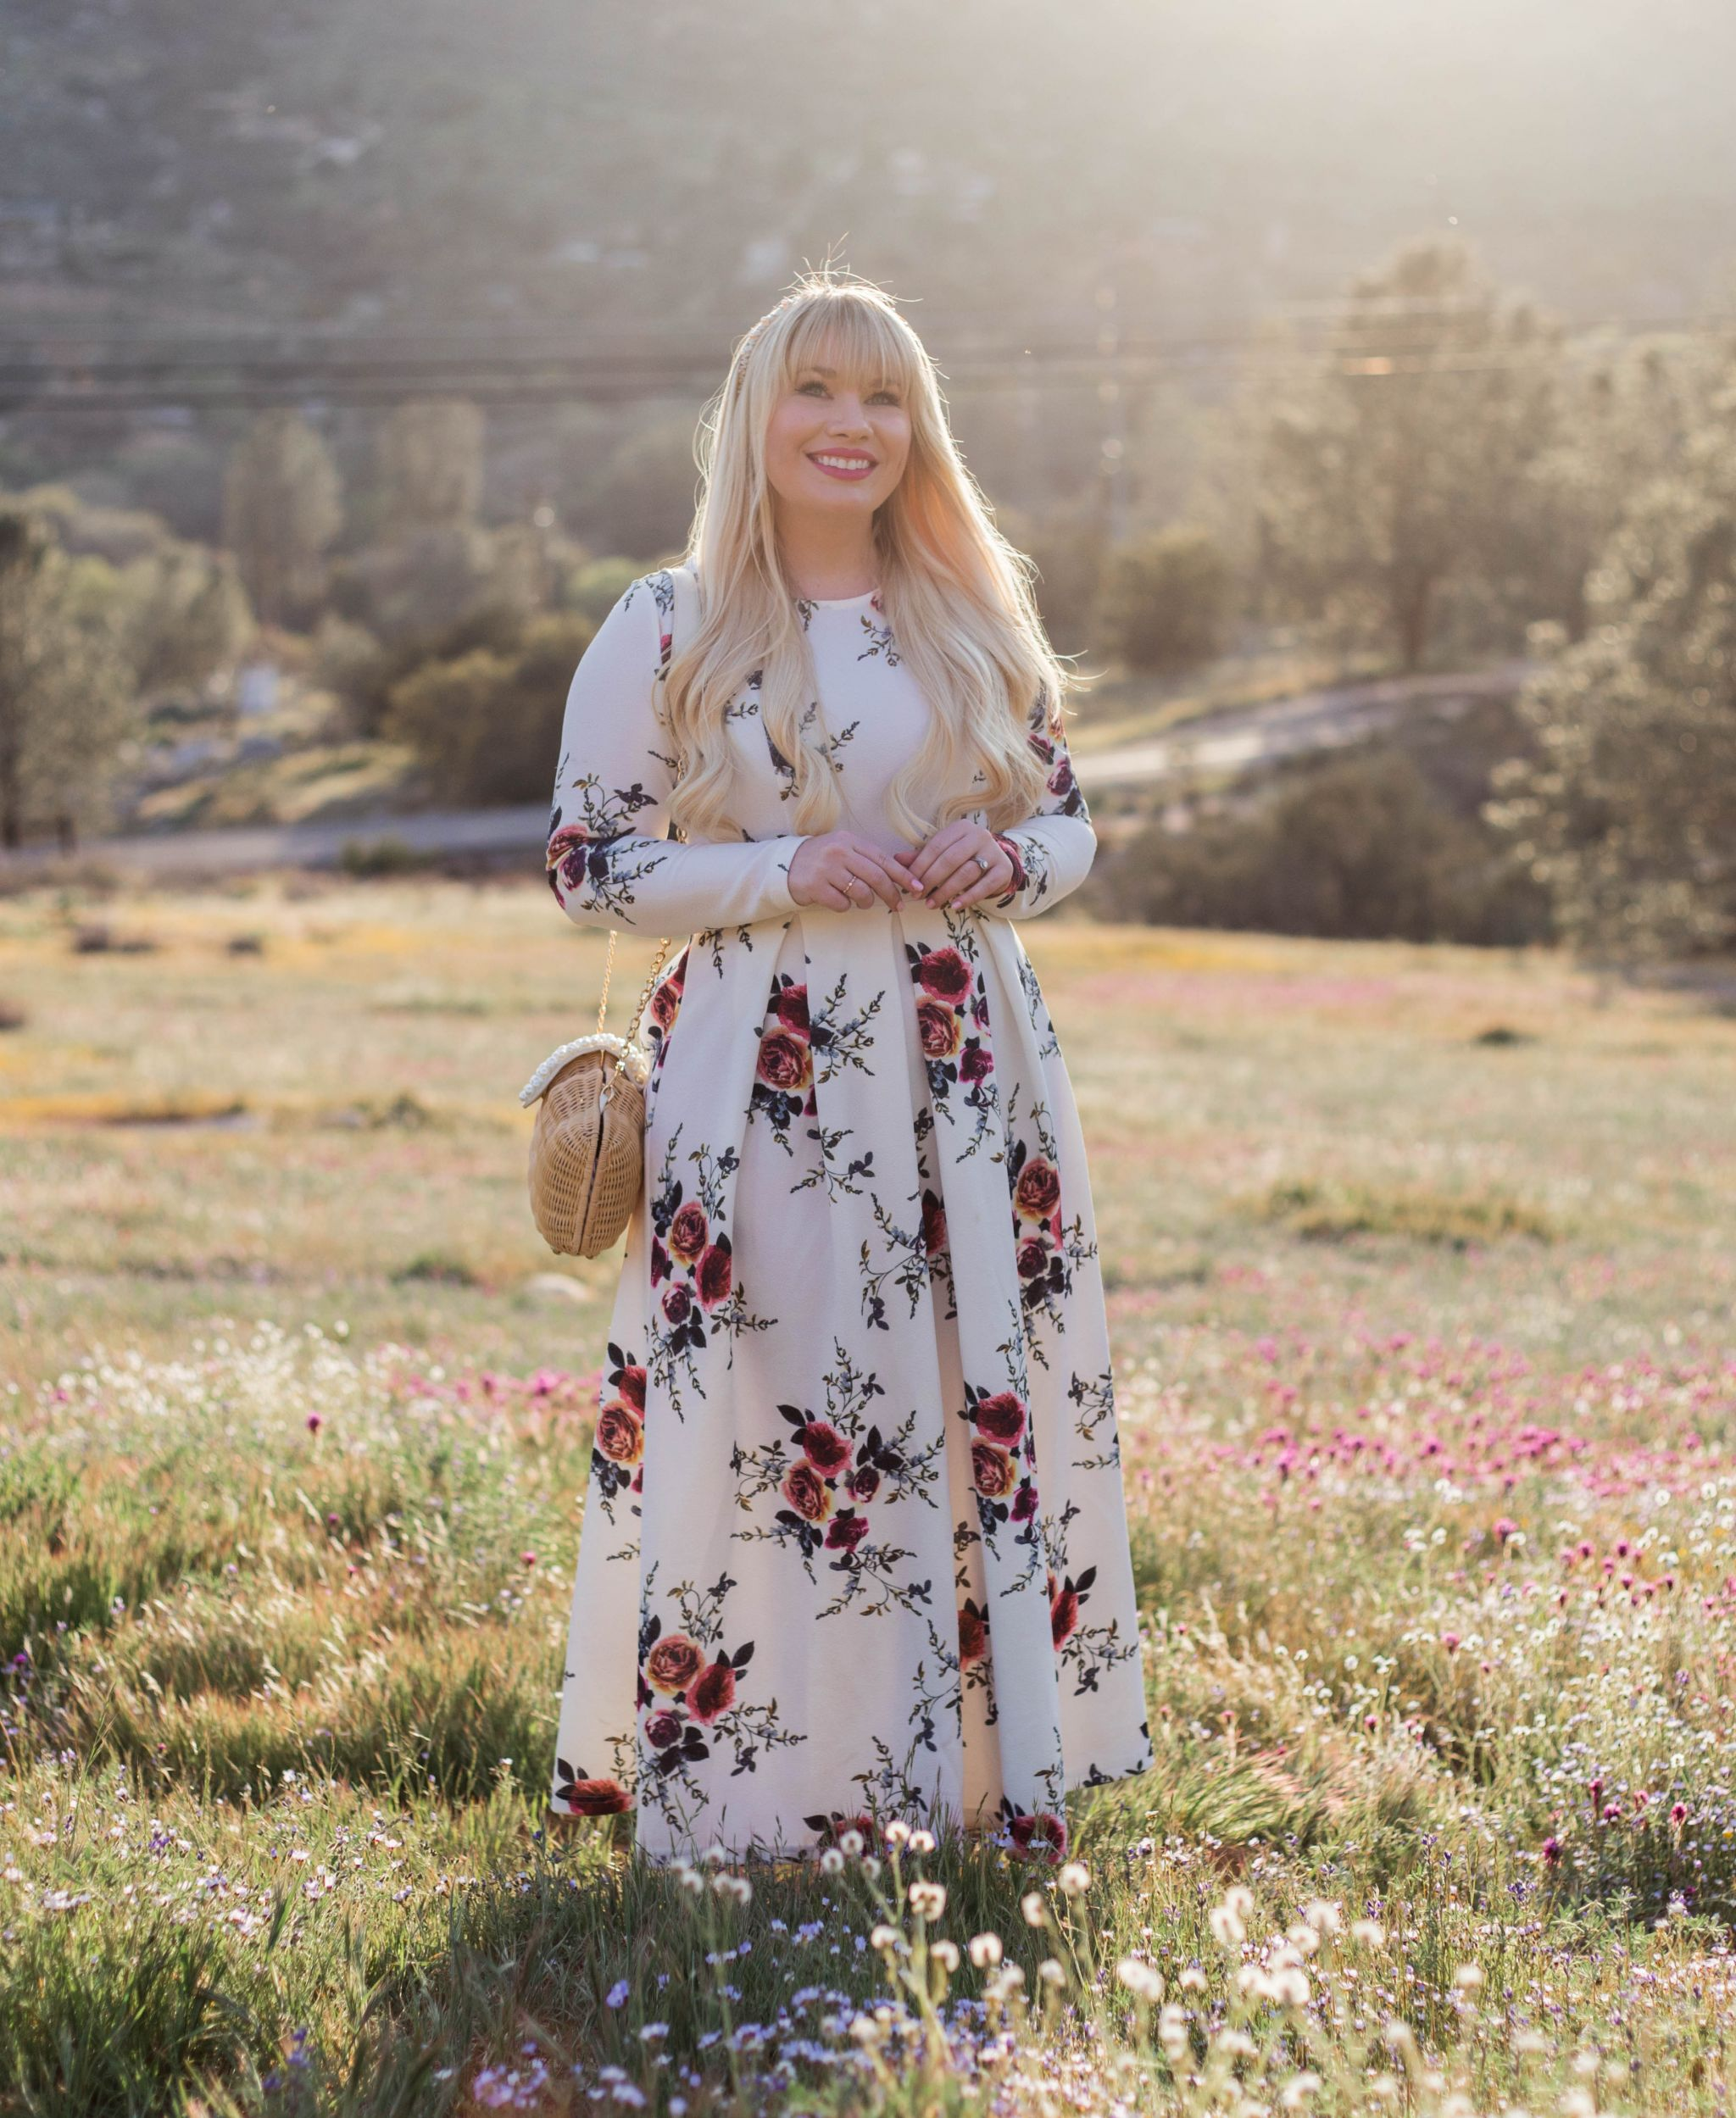 Elizabeth Hugen of Lizzie in Lace styles a white floral maxi dress and shares her Ultimate Blogger Photography Guide